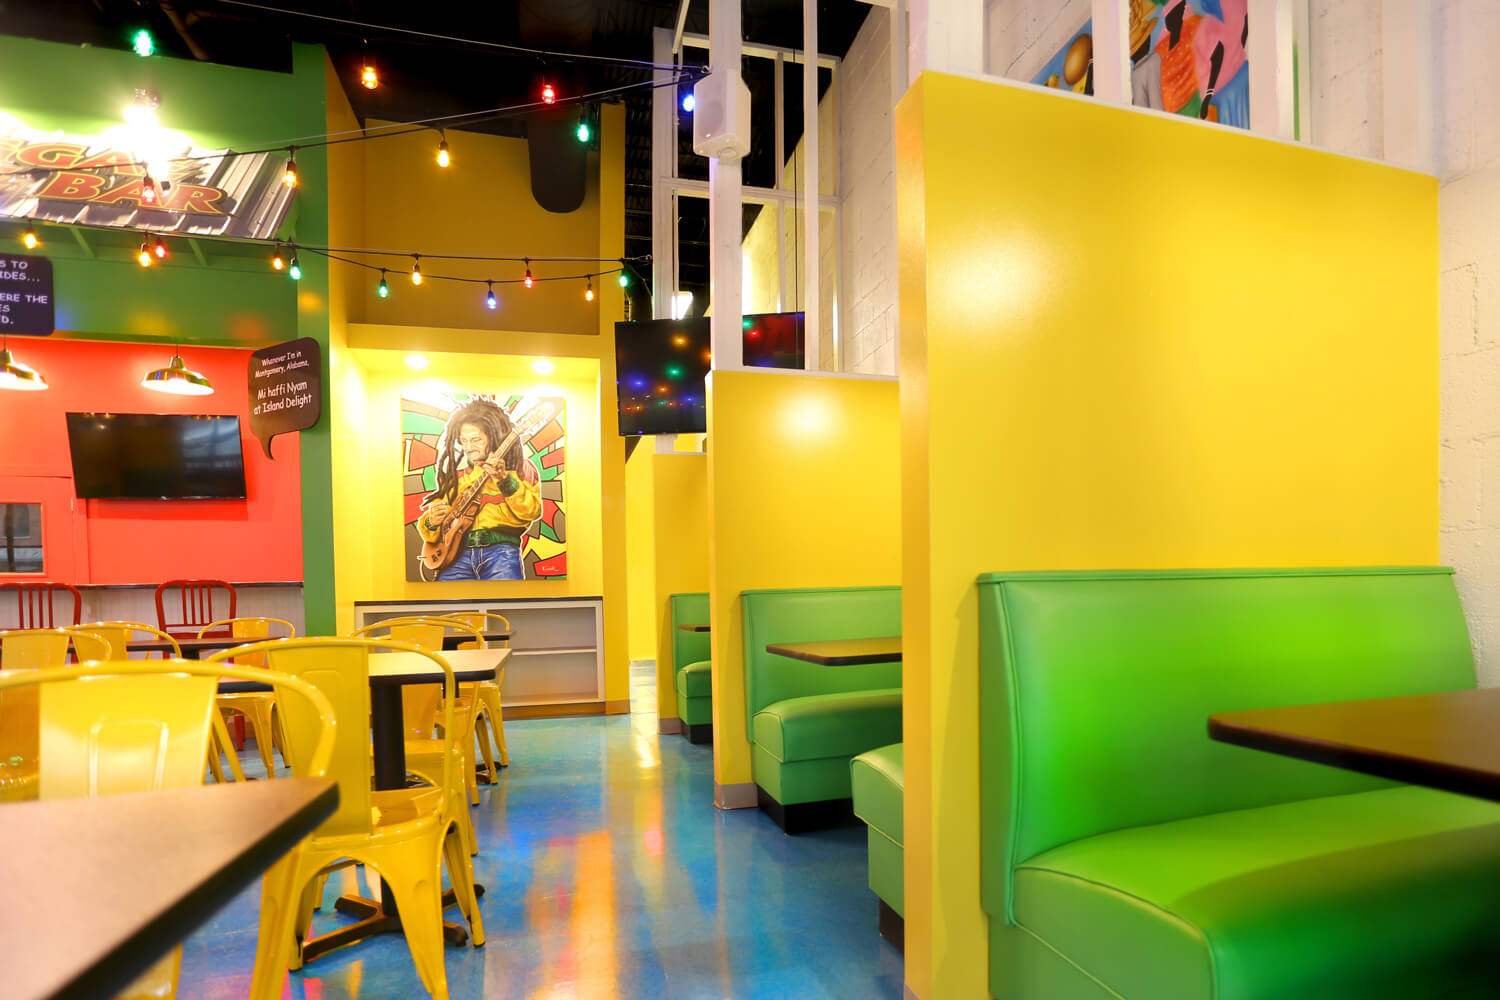 Designed by Foshee Architecture – Island Delight Restaurant Booth